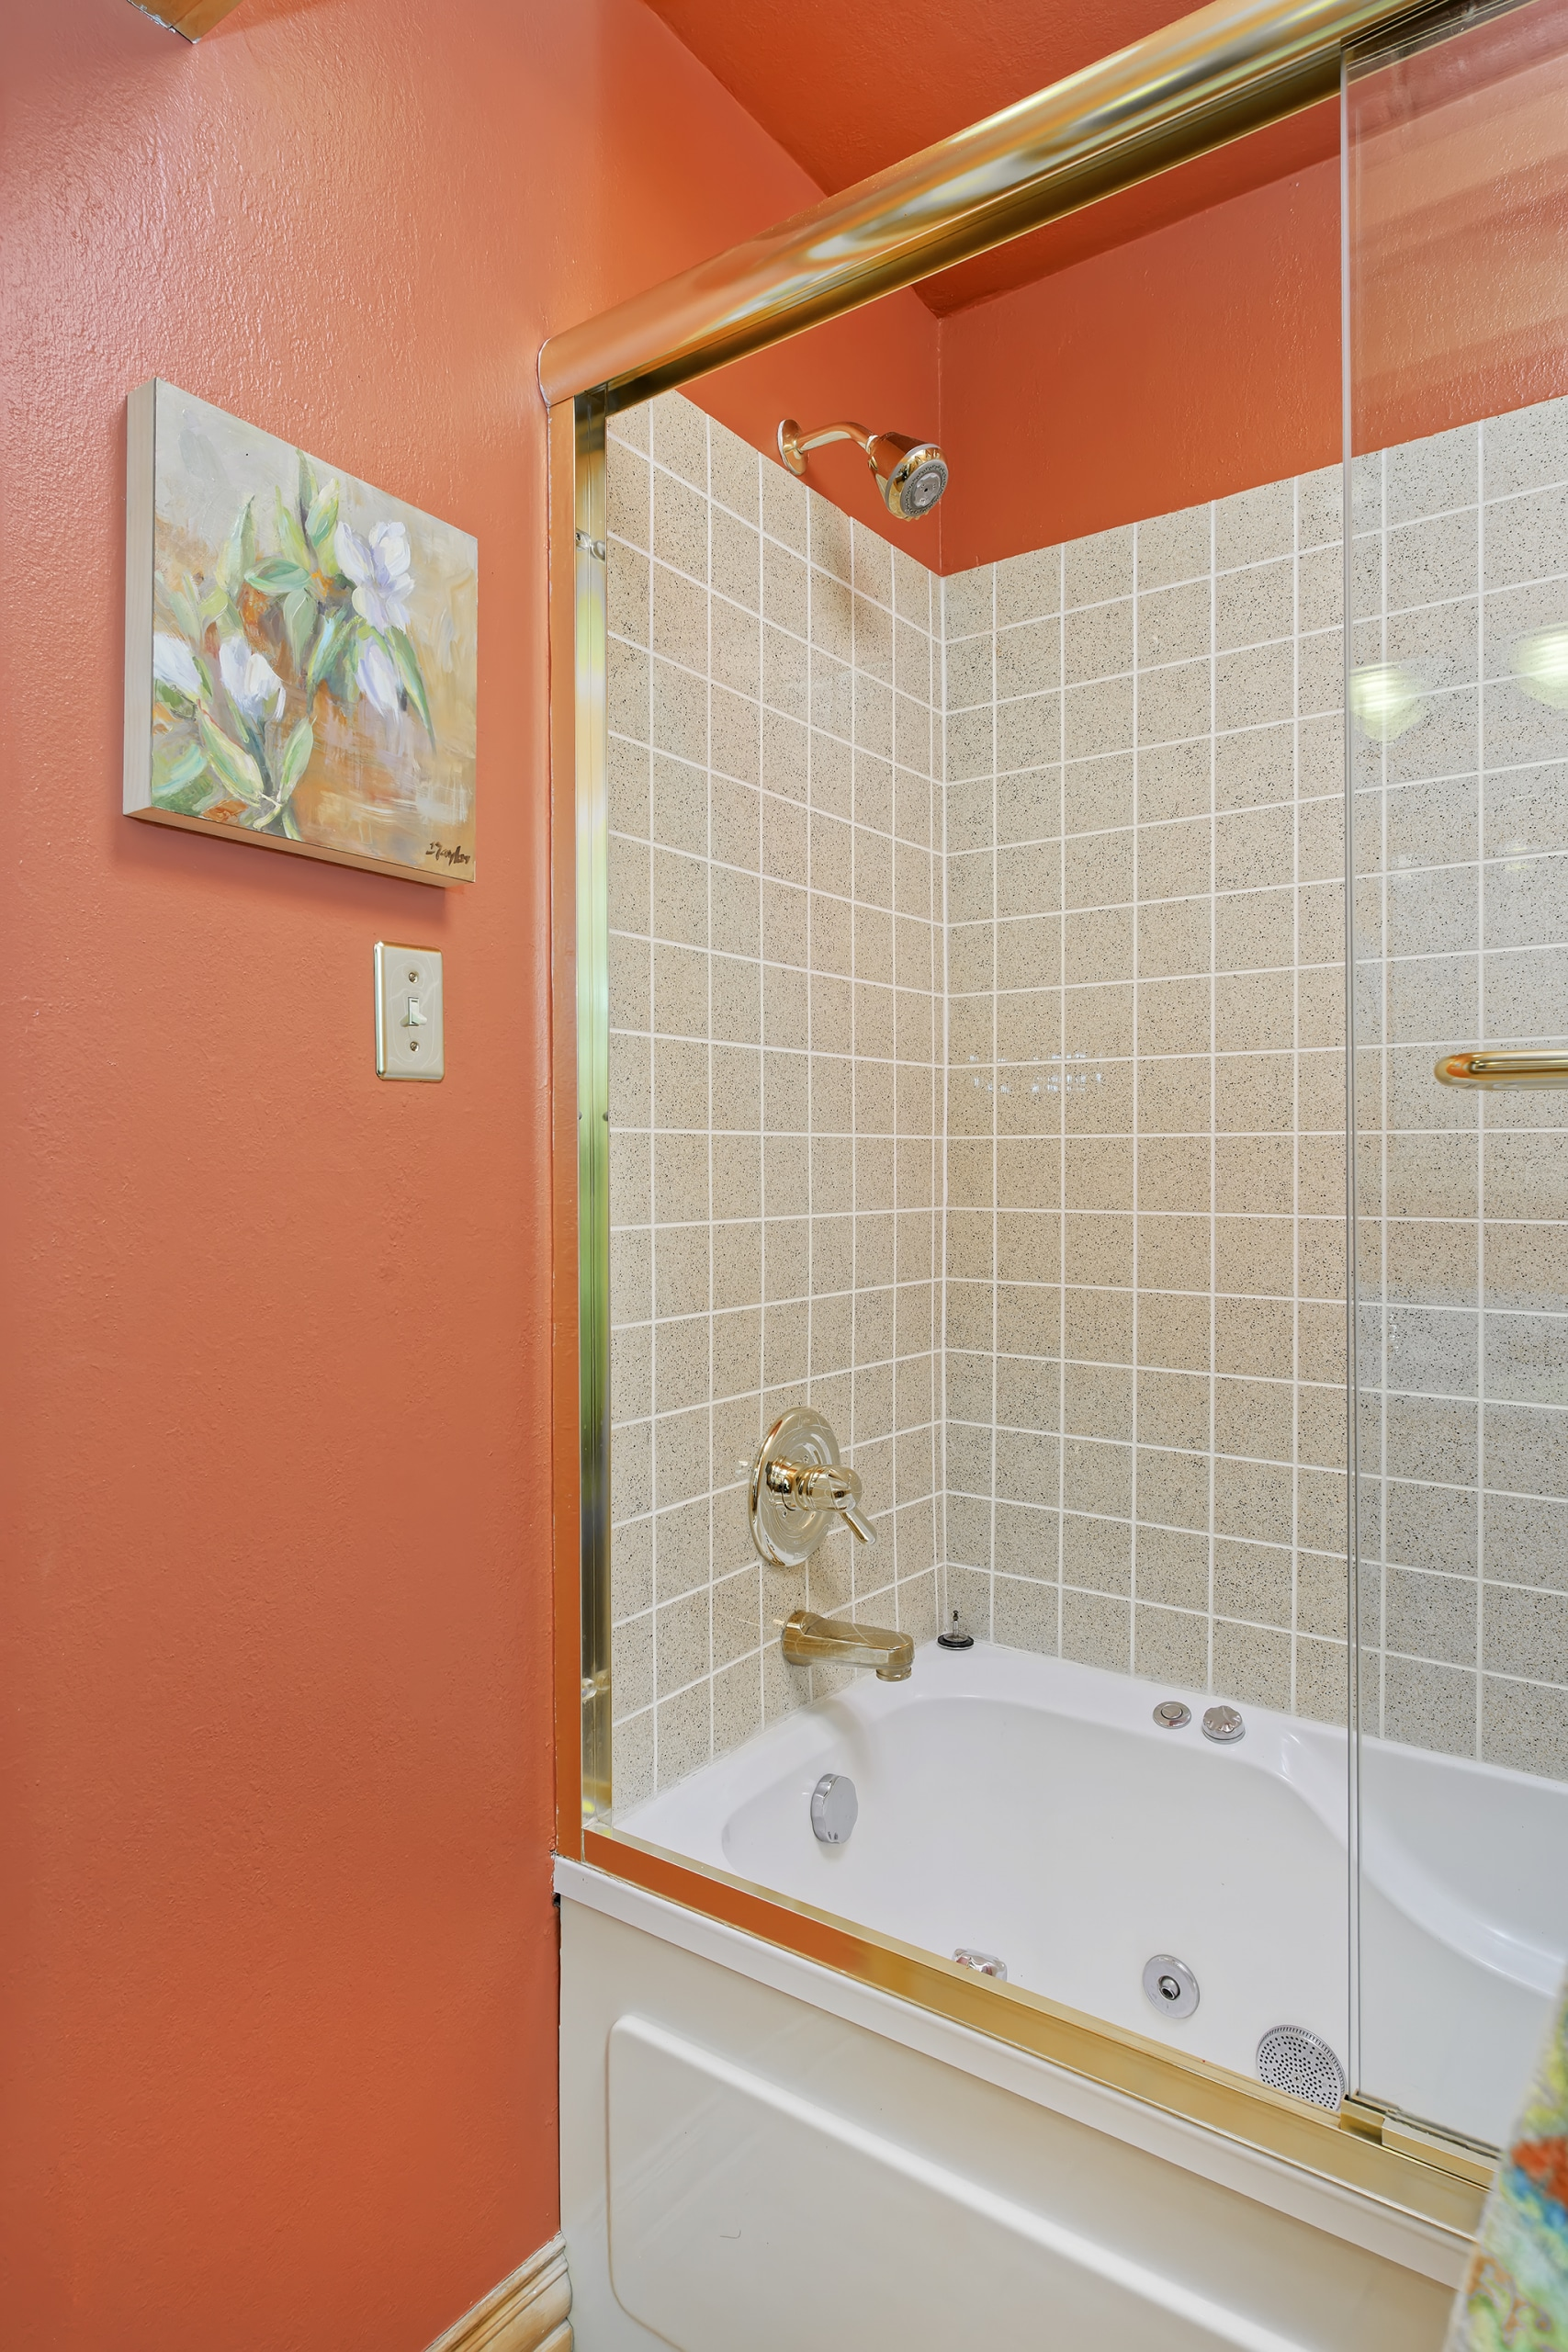 Washington Park Home Bathroom with Jetted tub, tile surround